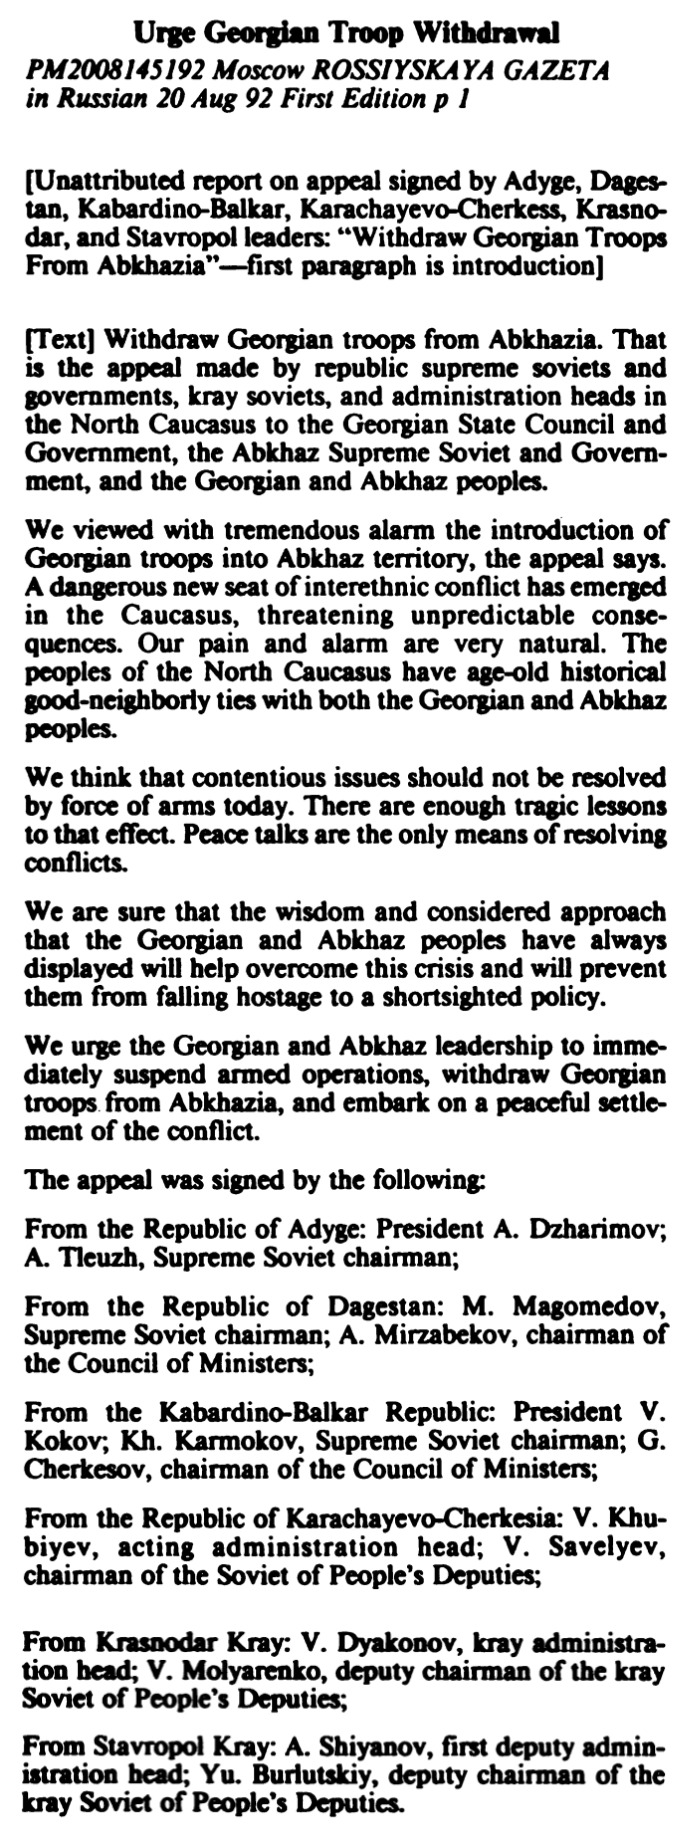 Urge Georgian Troop Withdrawal, ROSSIYSKAYA GAZETA